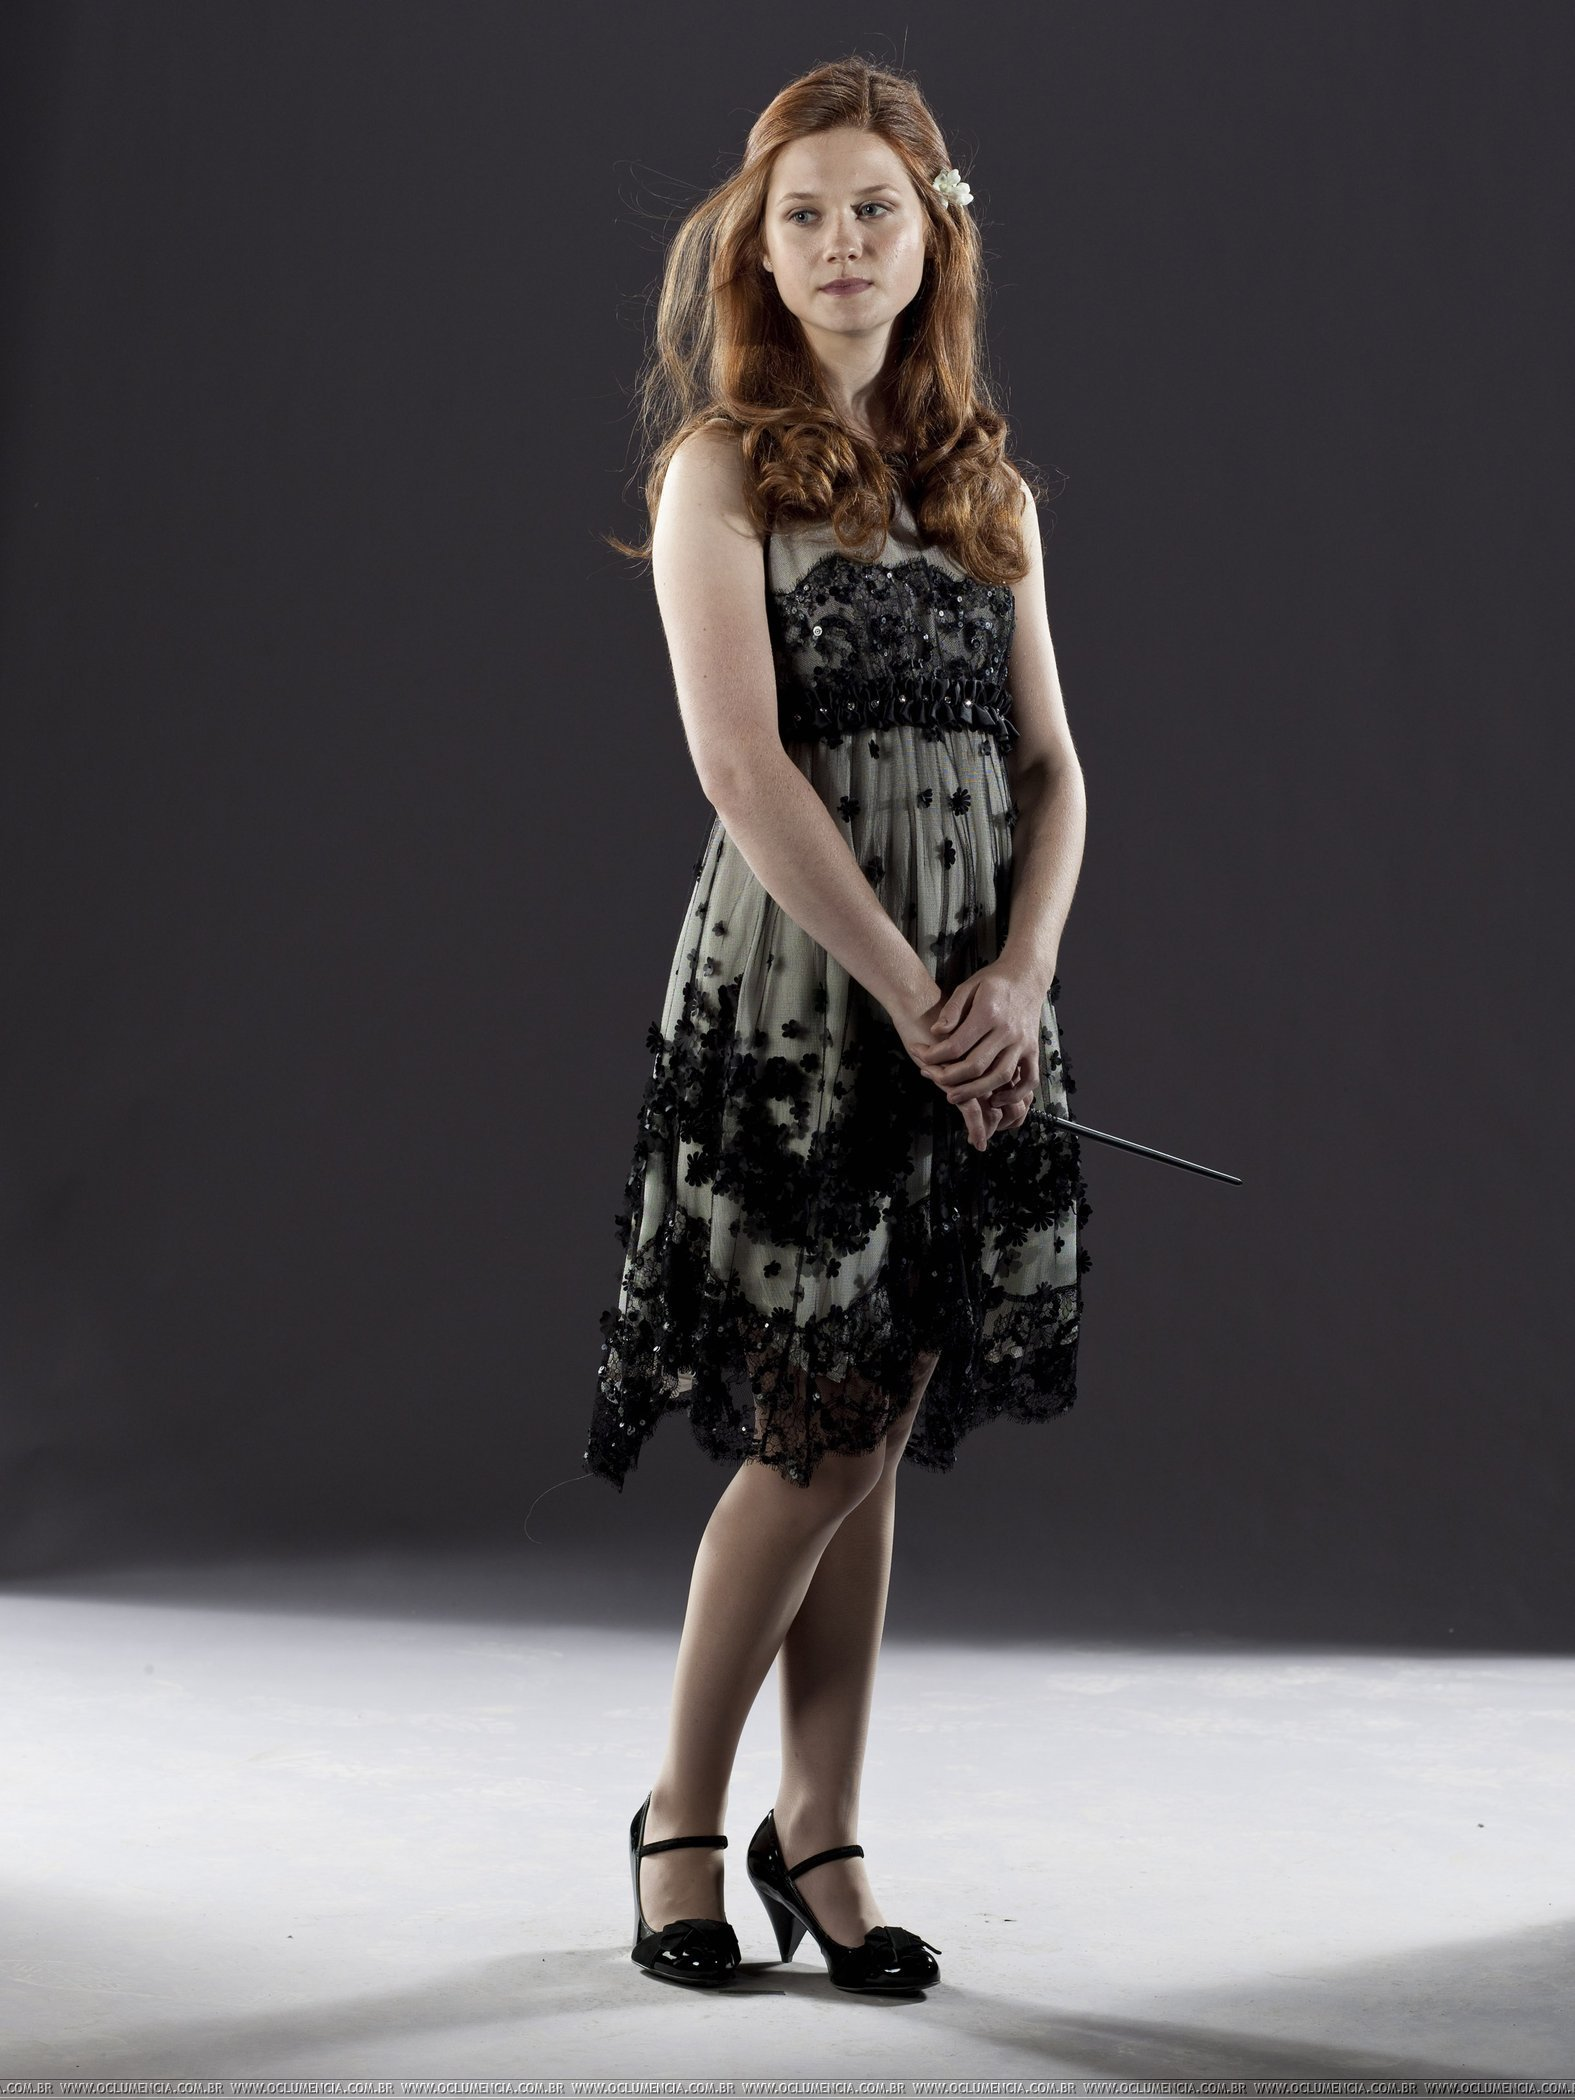 New Photoshoot from DH part 1